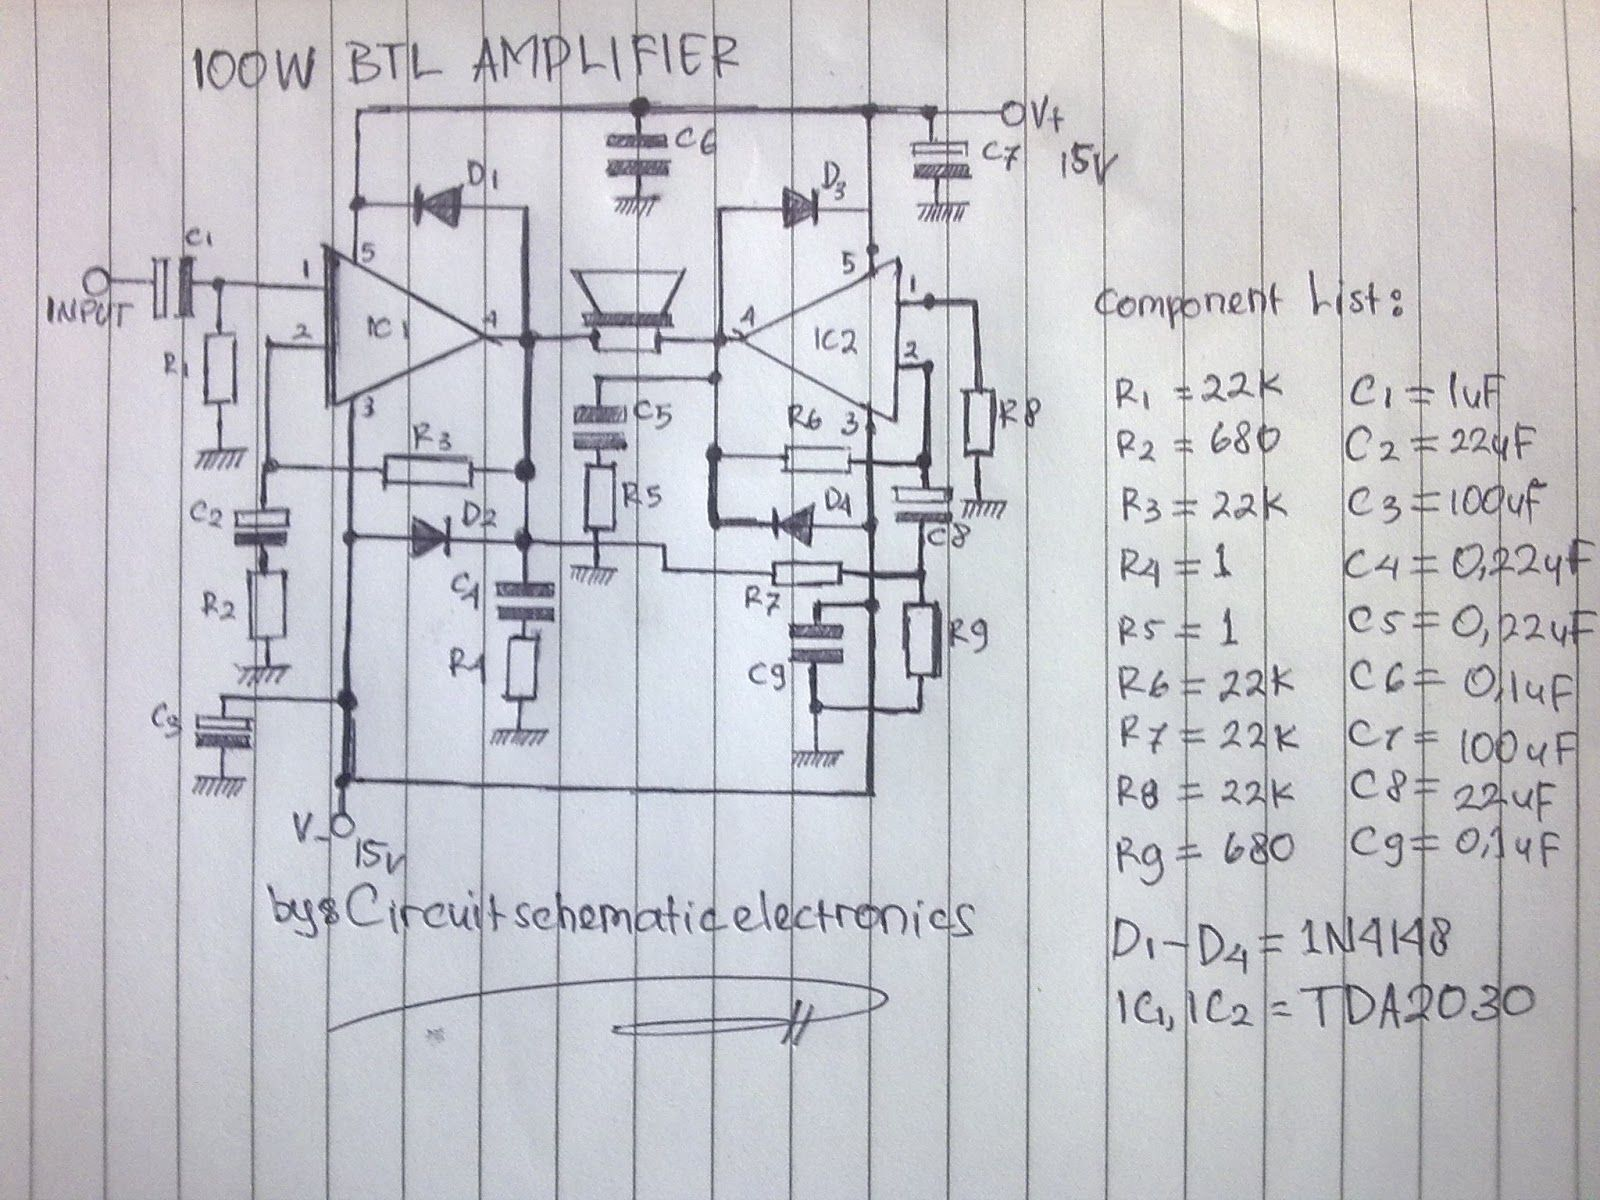 100W BTL TDA2030 amplifier circuit